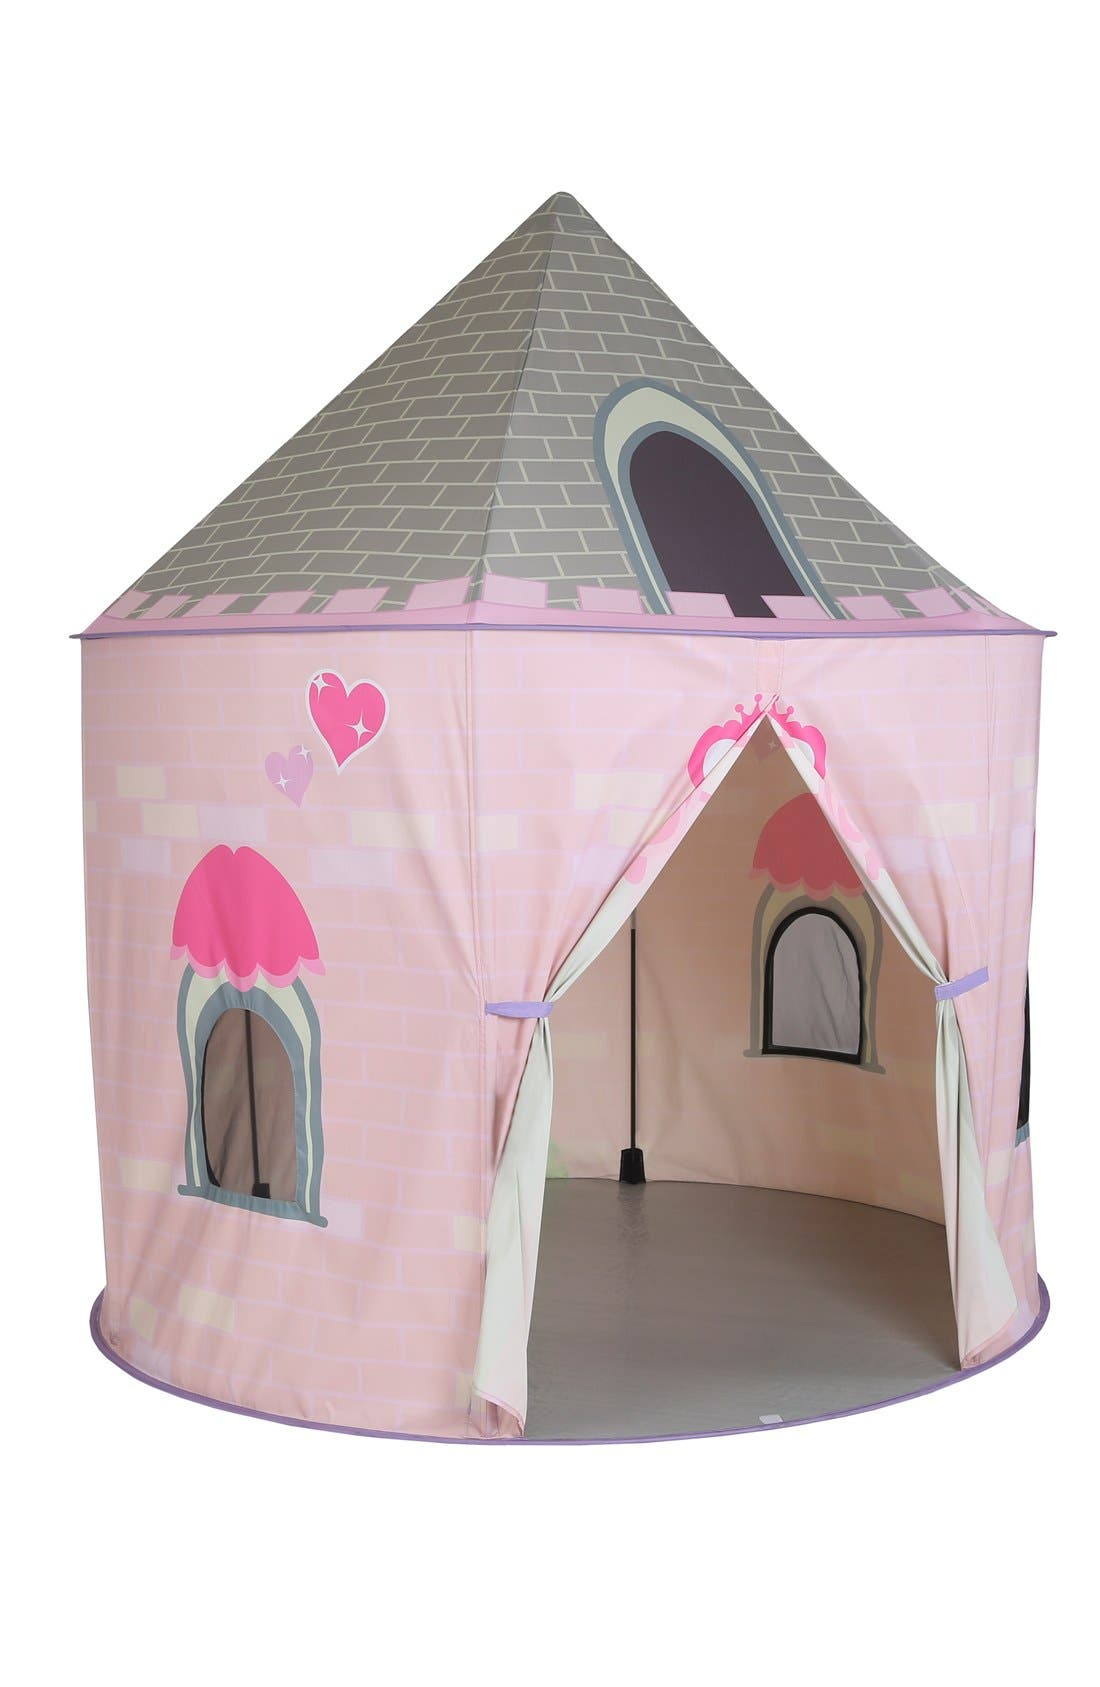 Alternate Image 1 Selected - Pacific Play Tents 'Princess Castle' Pavilion